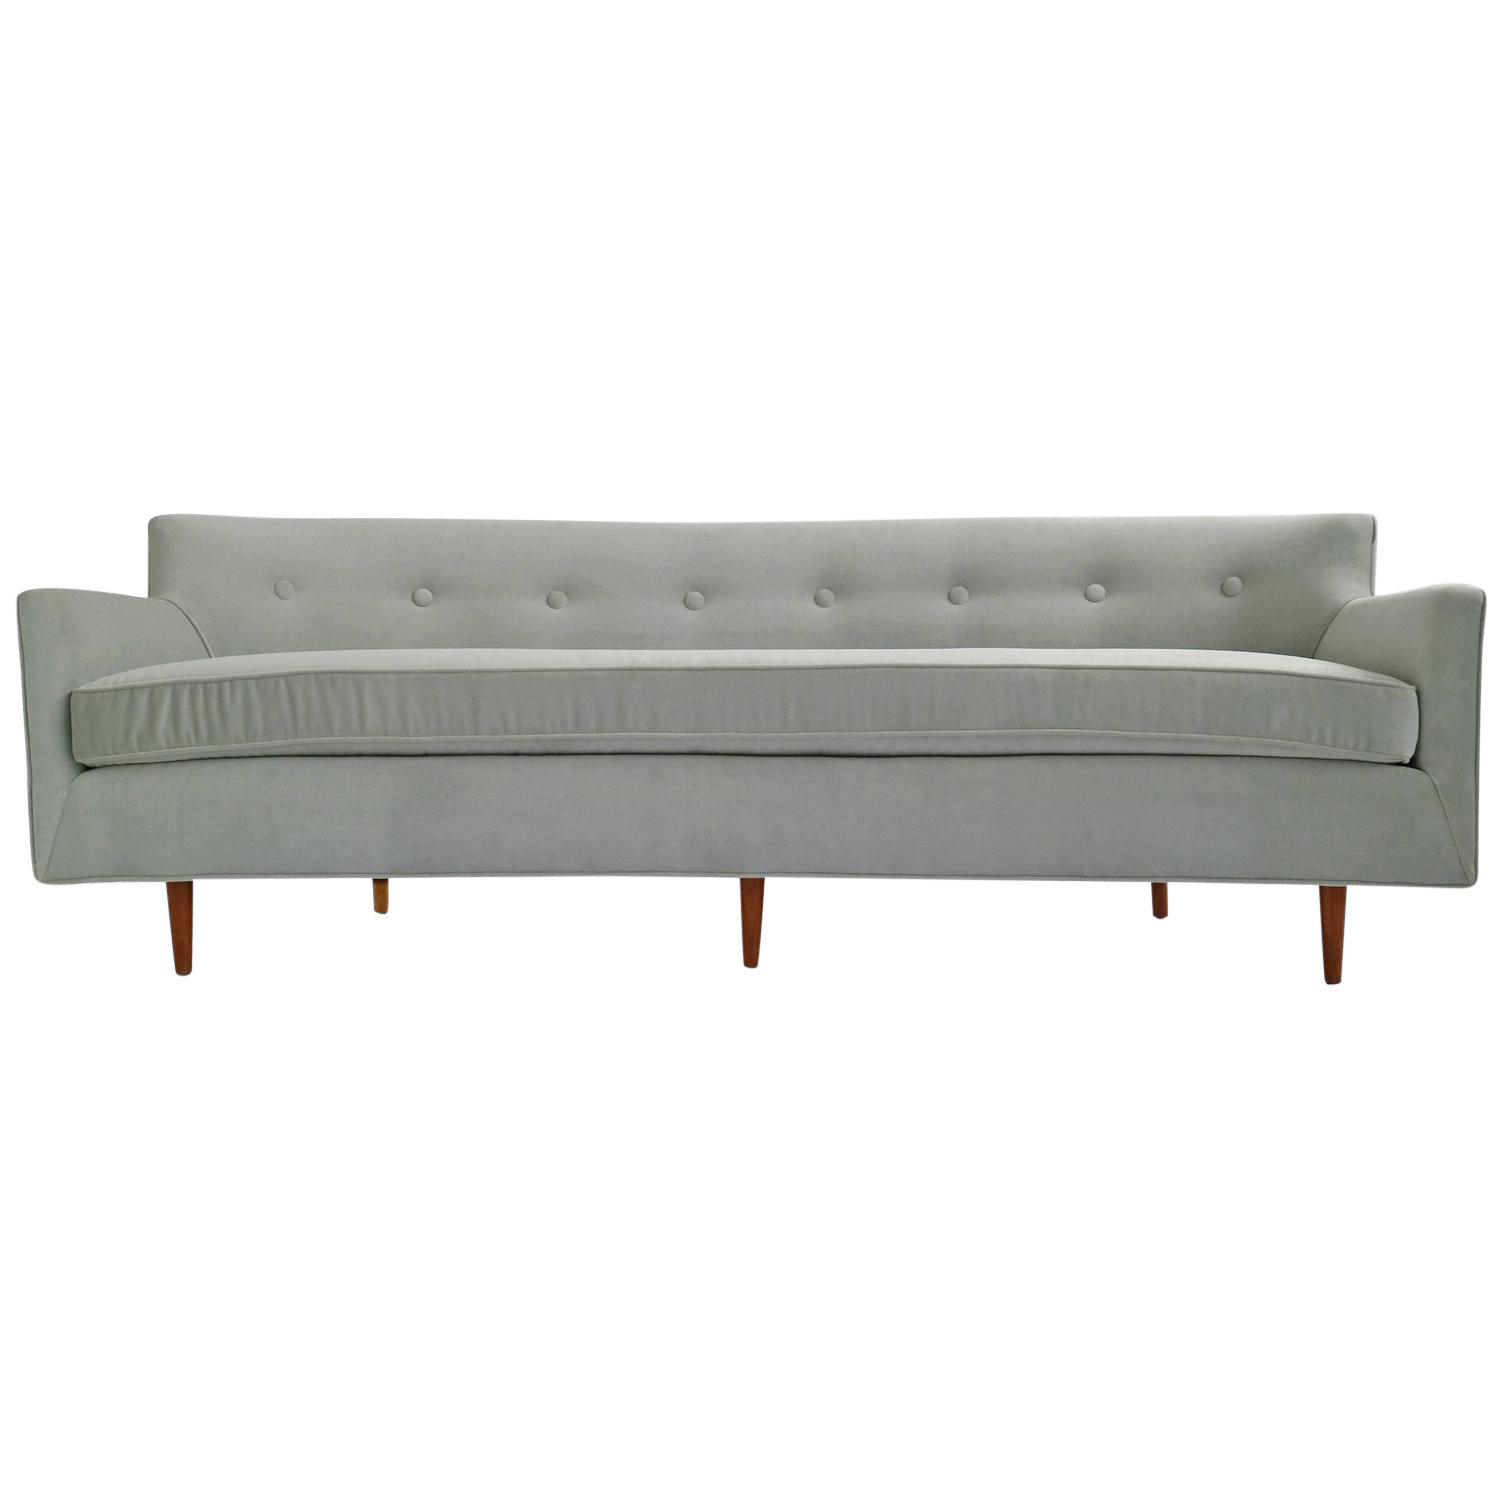 Sophisticated Danish Modern Curved Back Sofa